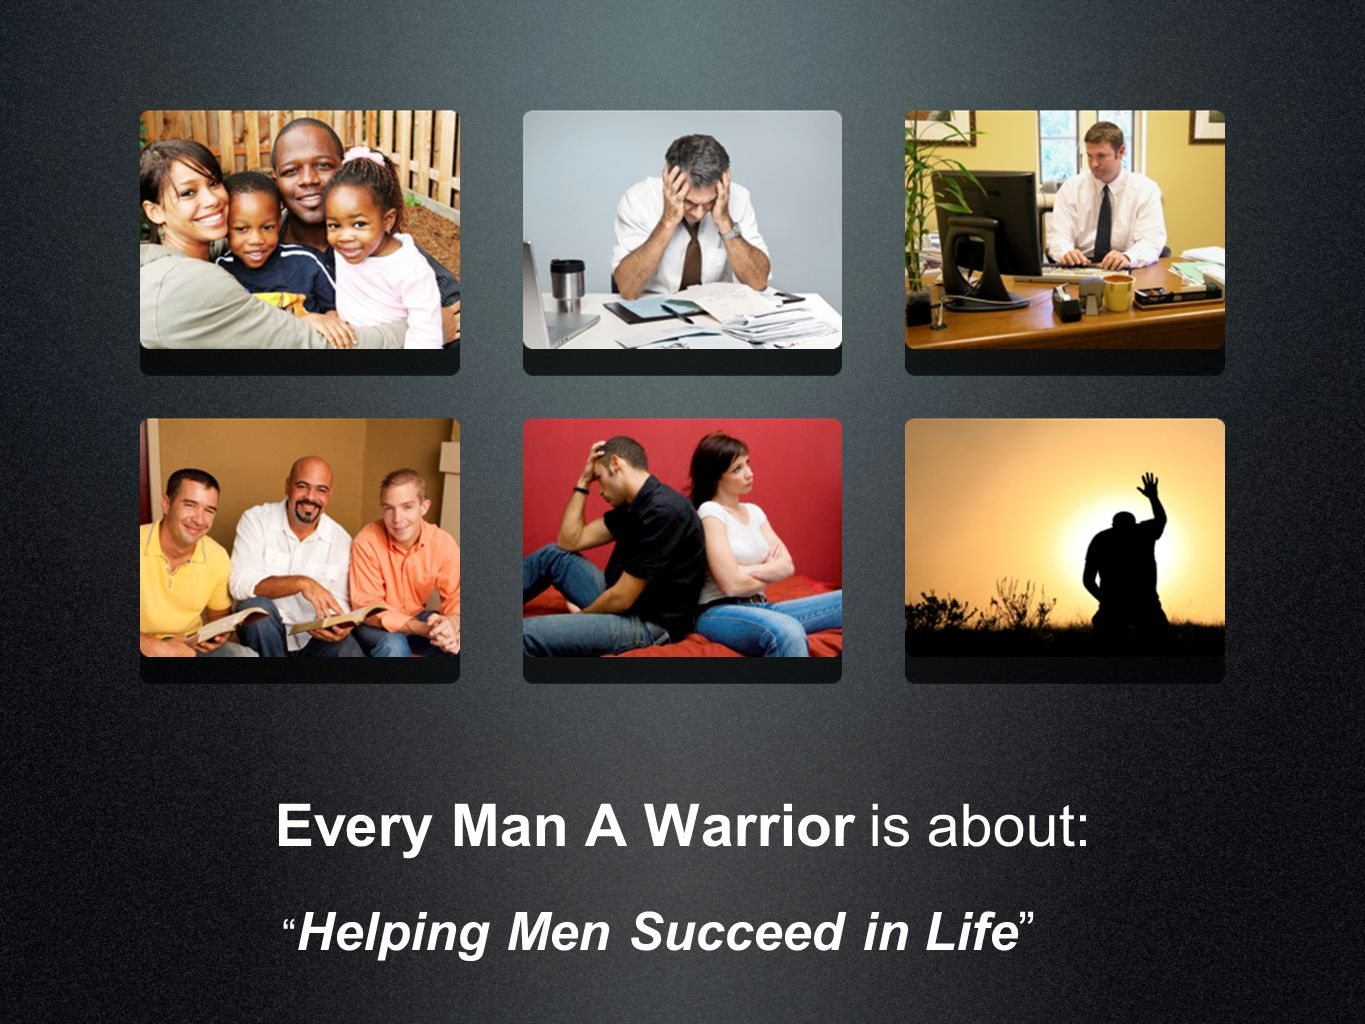 Every Man A Warrior is a 32 week Bible study broken into 3 books of 9-12 weeks each. They are: